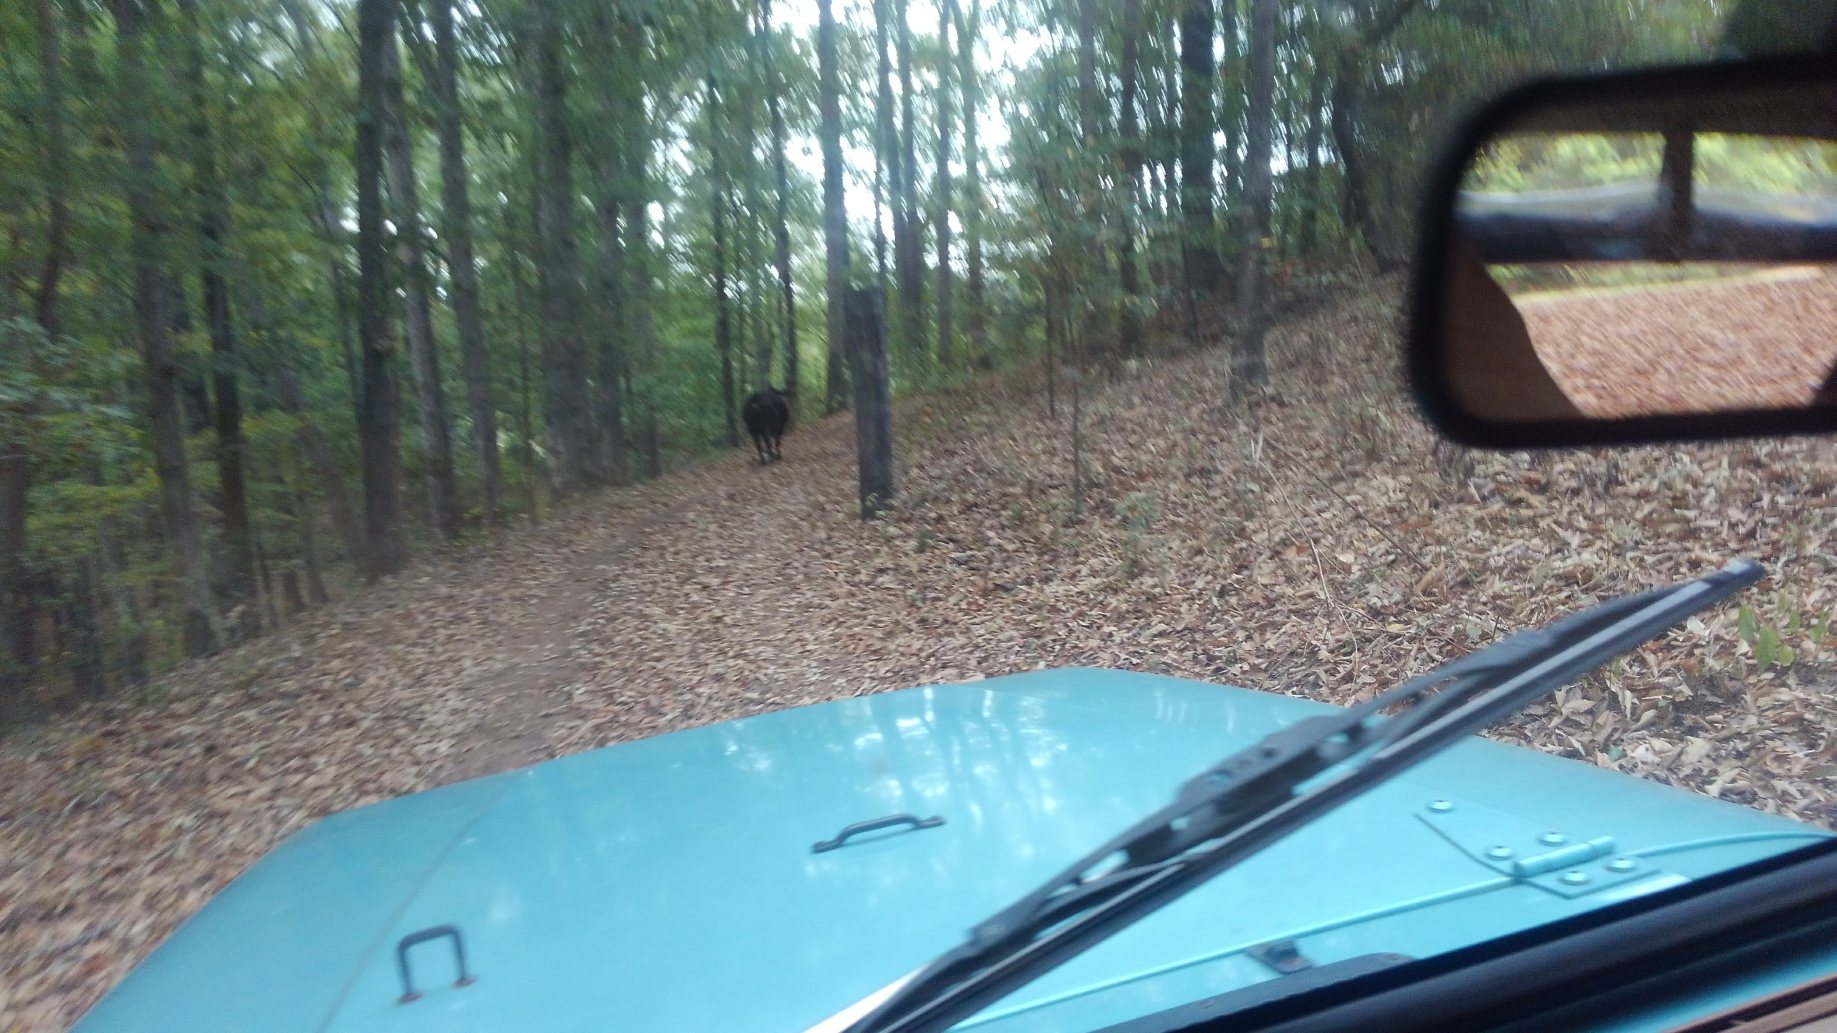 Herding cows in an old Jeep